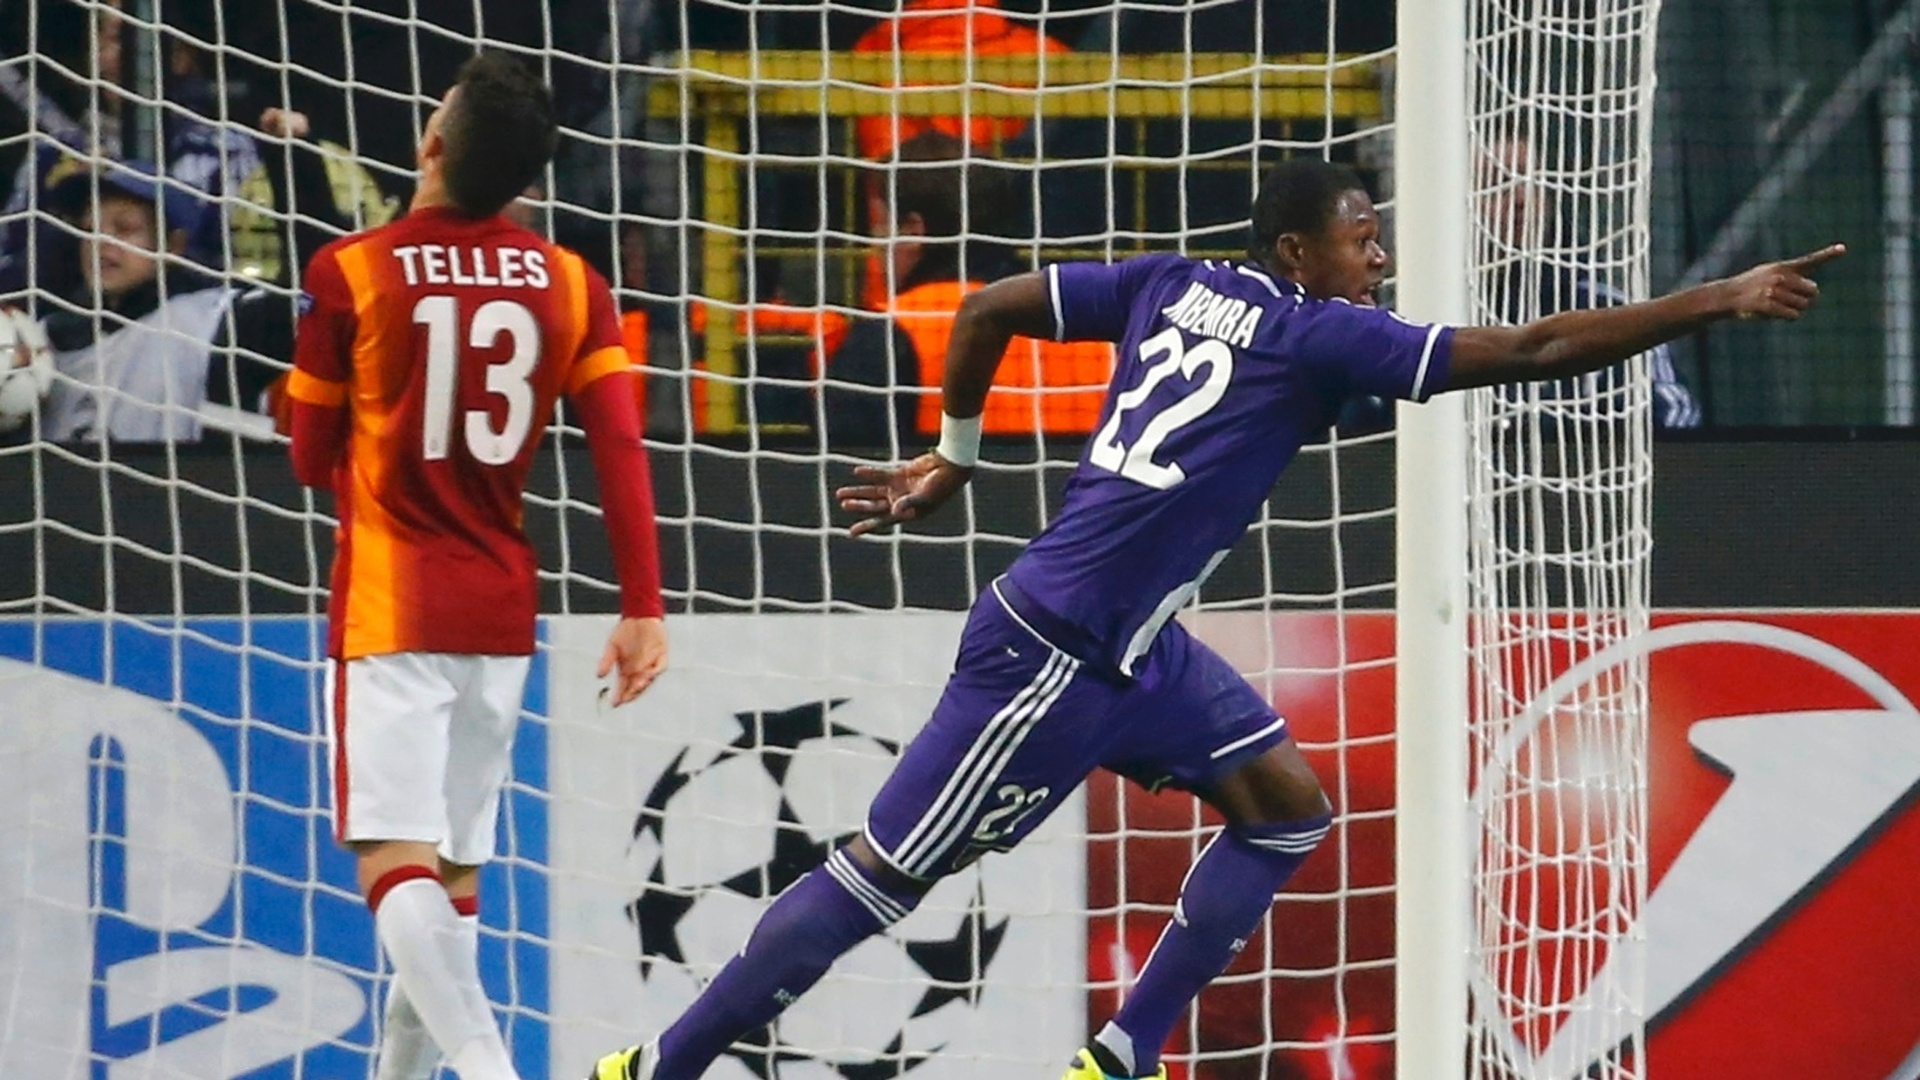 Alex Telles, do Galatasaray, lamenta gol de Mbemba, do Anderlecht